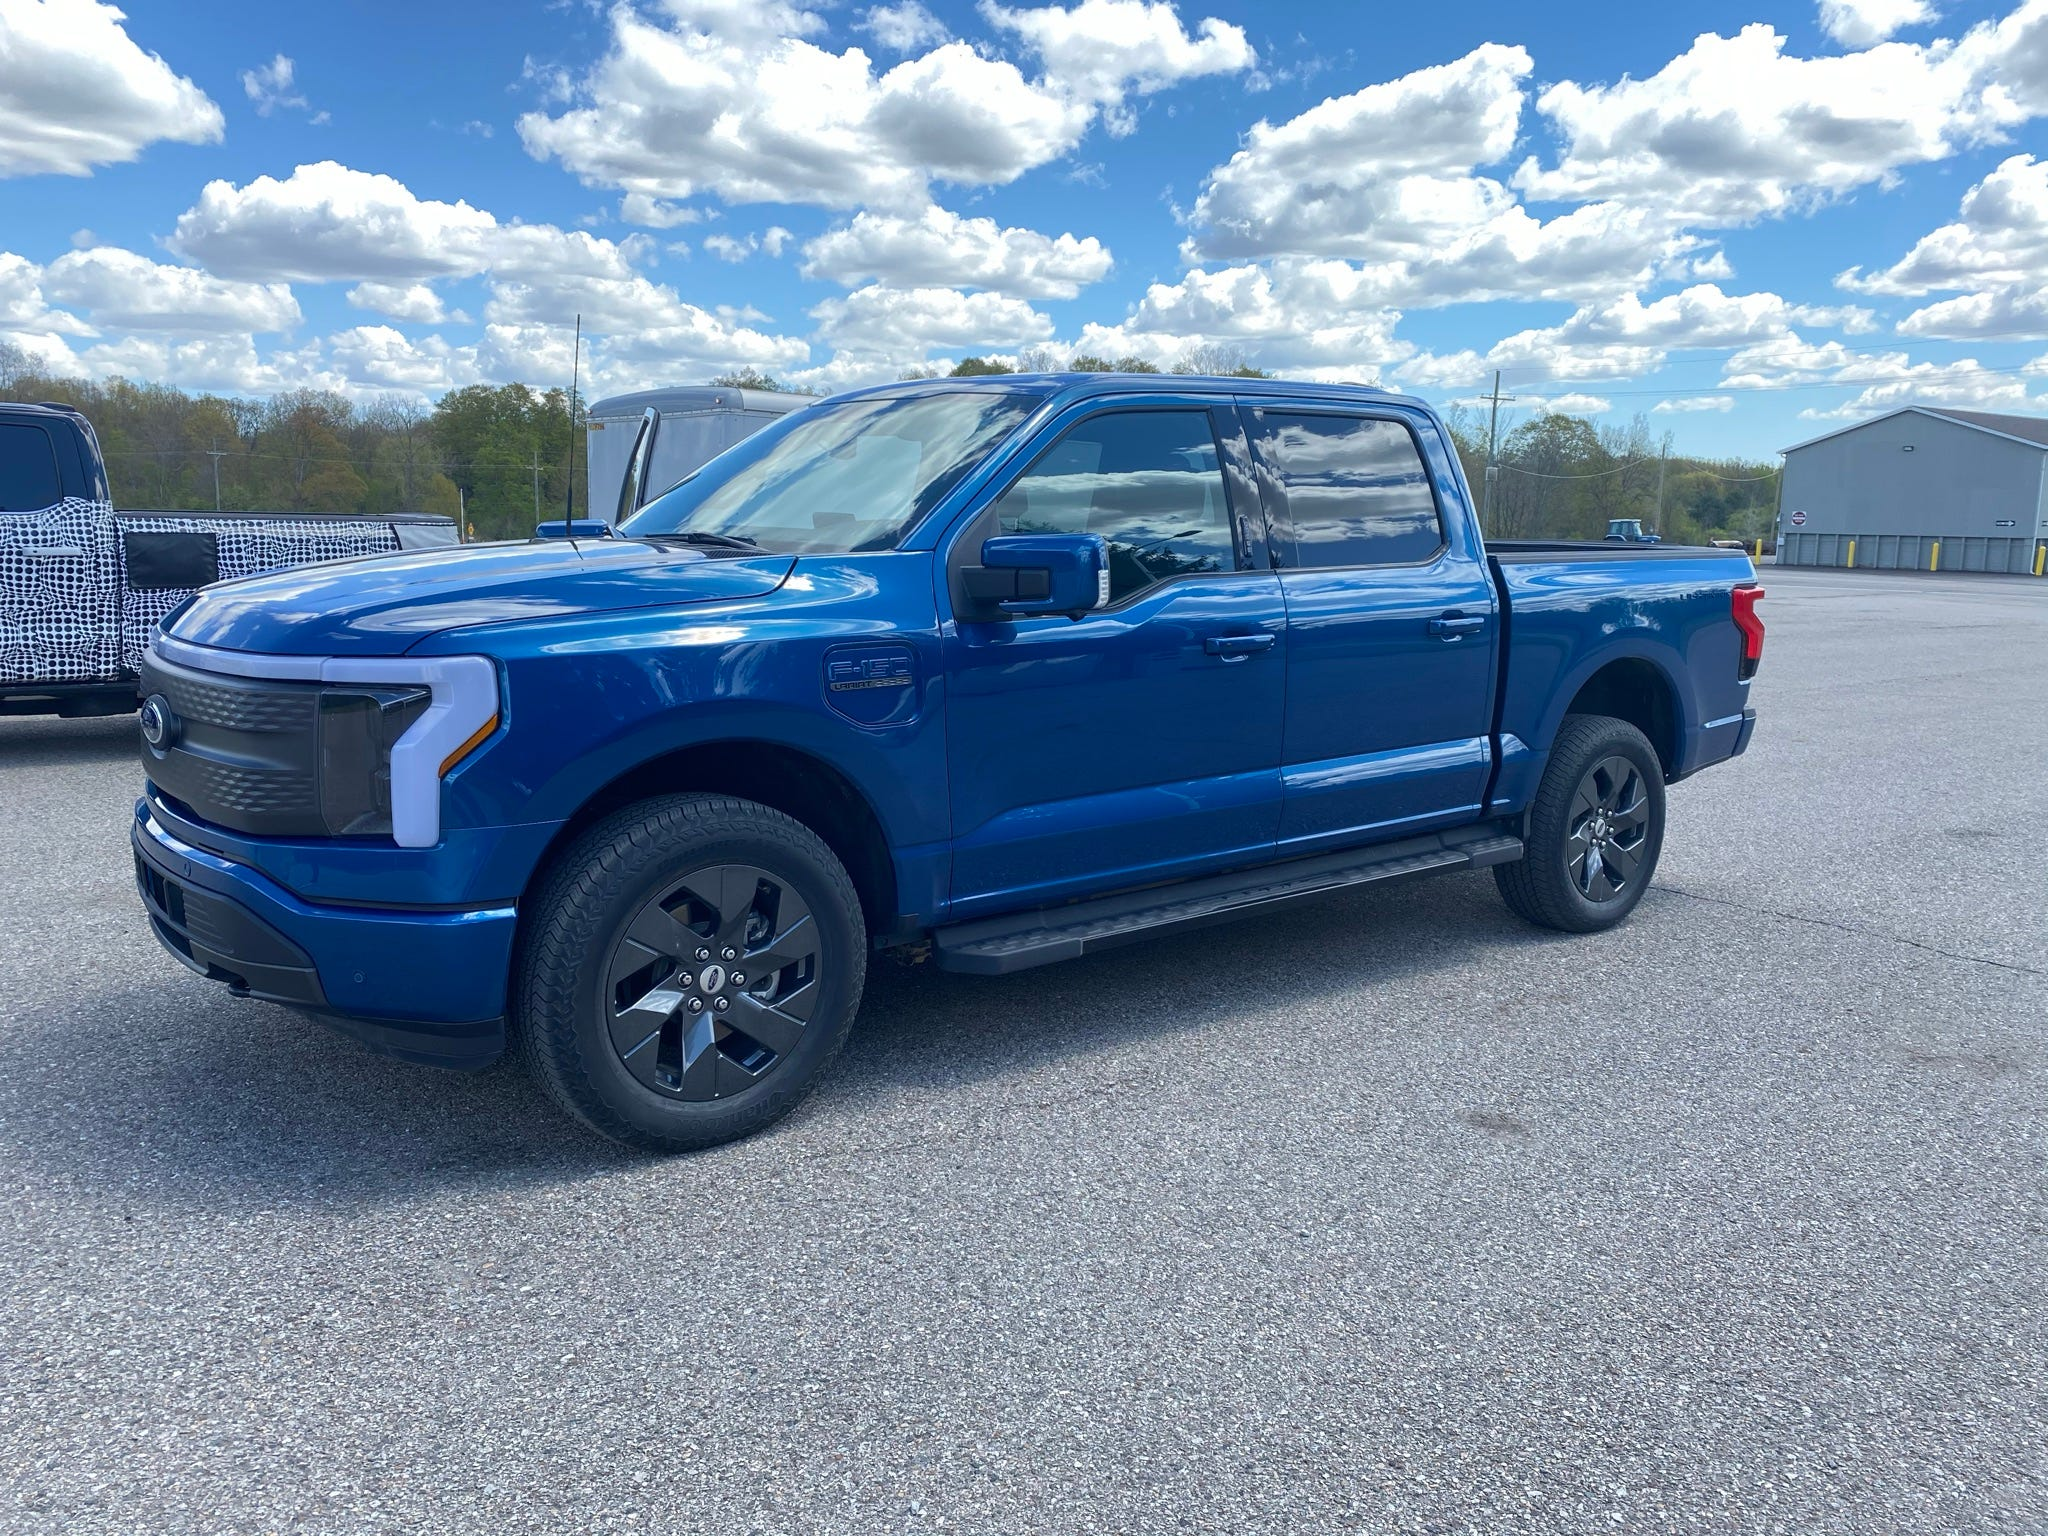 Ford s 2022 F-150 Lightning electric pickup could change how America travels and works